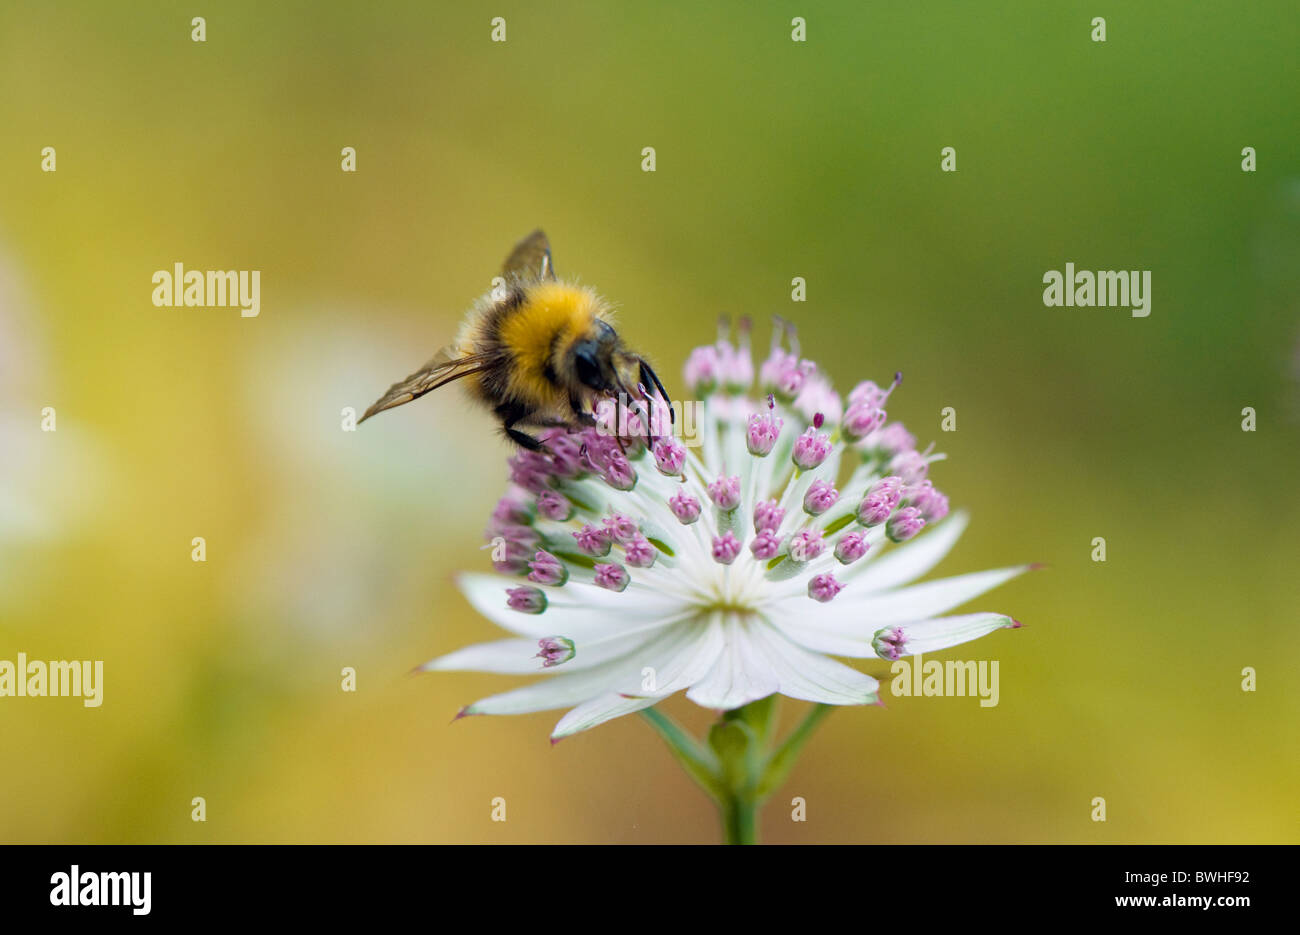 A bee collecting pollen from an Astrantia flower - Stock Image